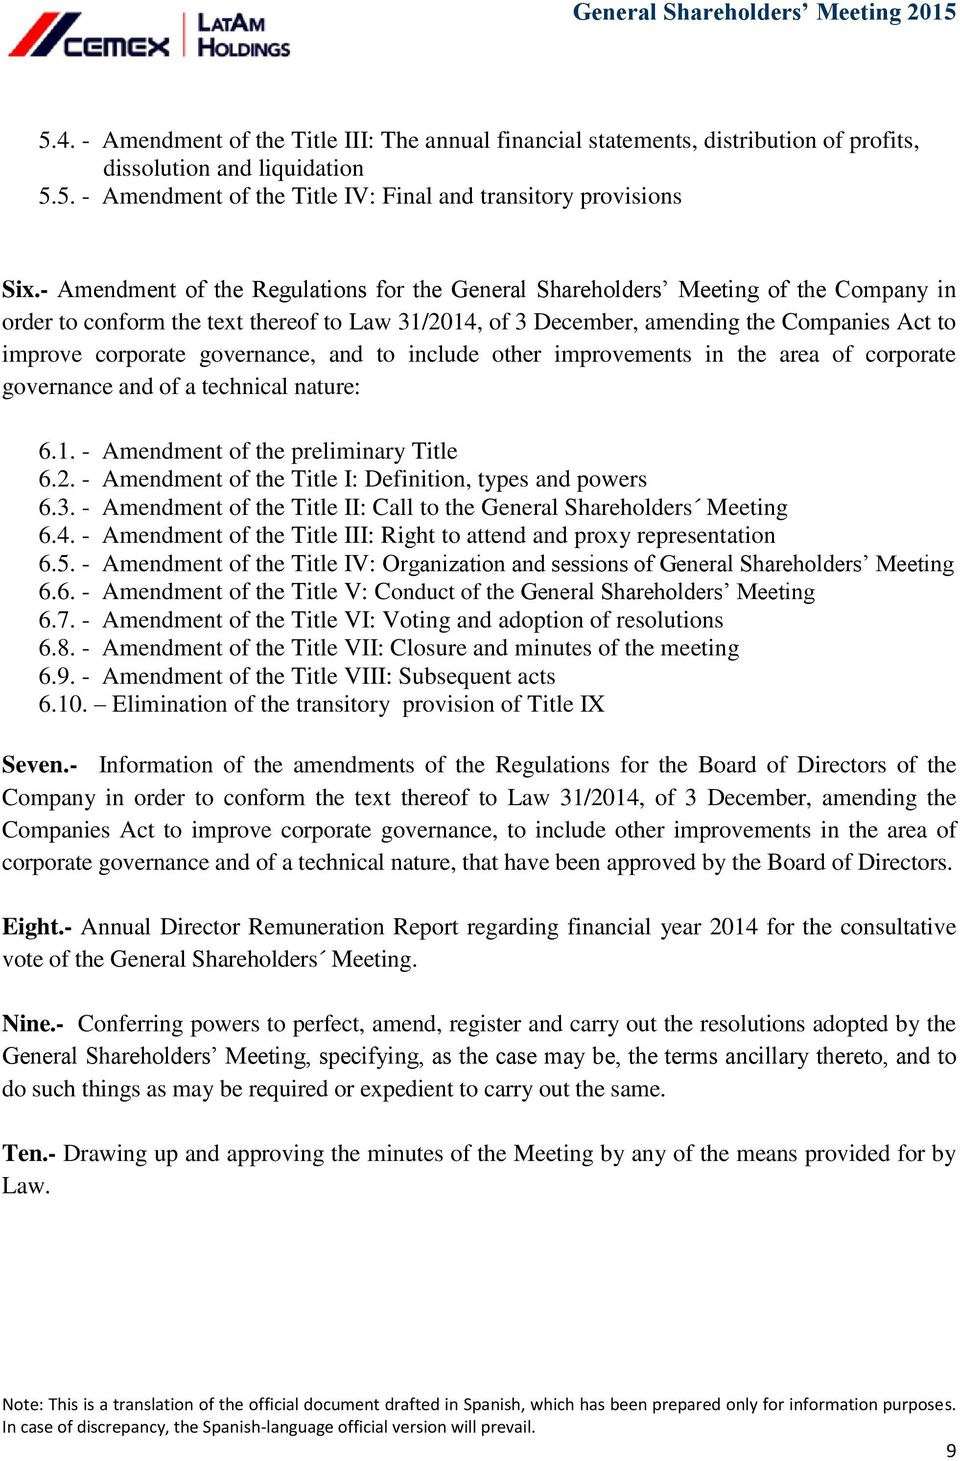 governance, and to include other improvements in the area of corporate governance and of a technical nature: 6.1. - Amendment of the preliminary Title 6.2.